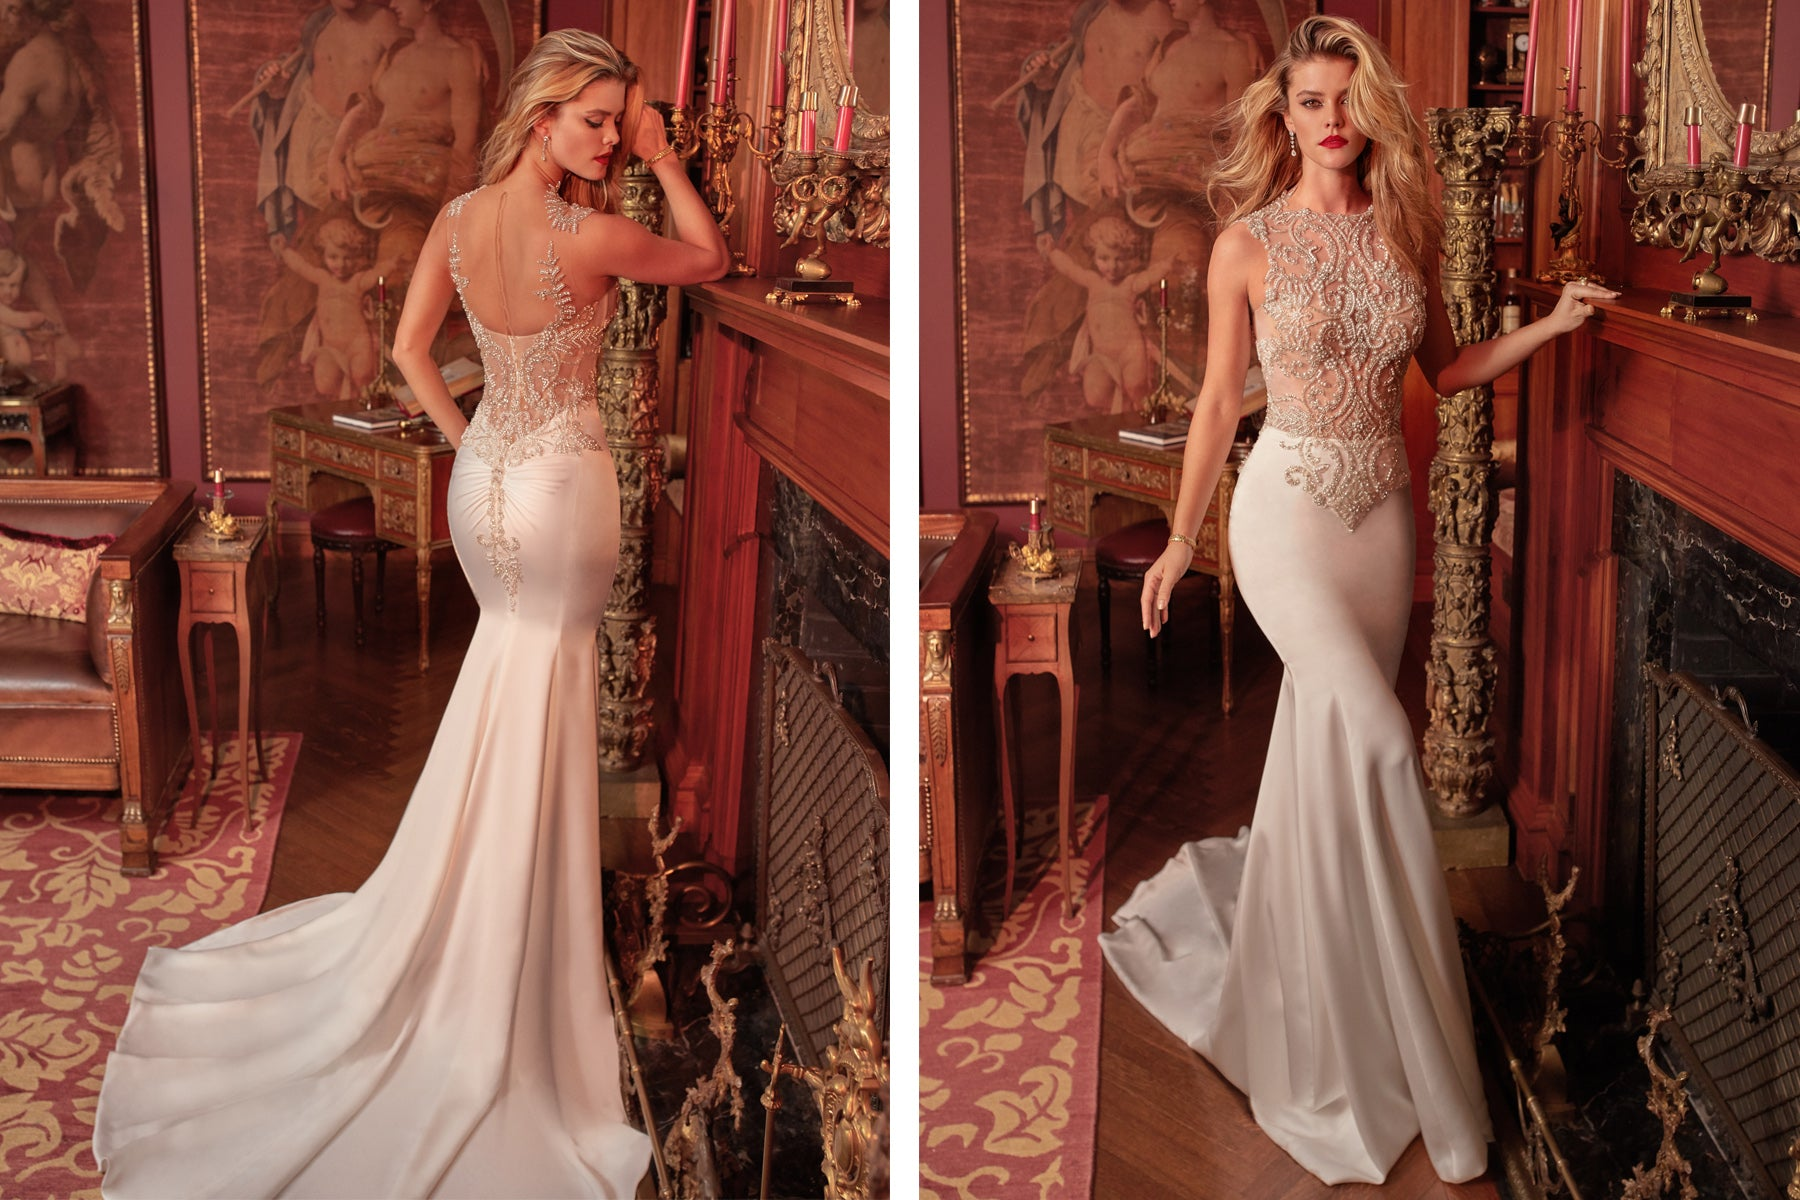 Eternal_Bridal_Wedding_Dress_Galia_Lahav_Haute_Couture_Queen_of_Hearts_Emersyn